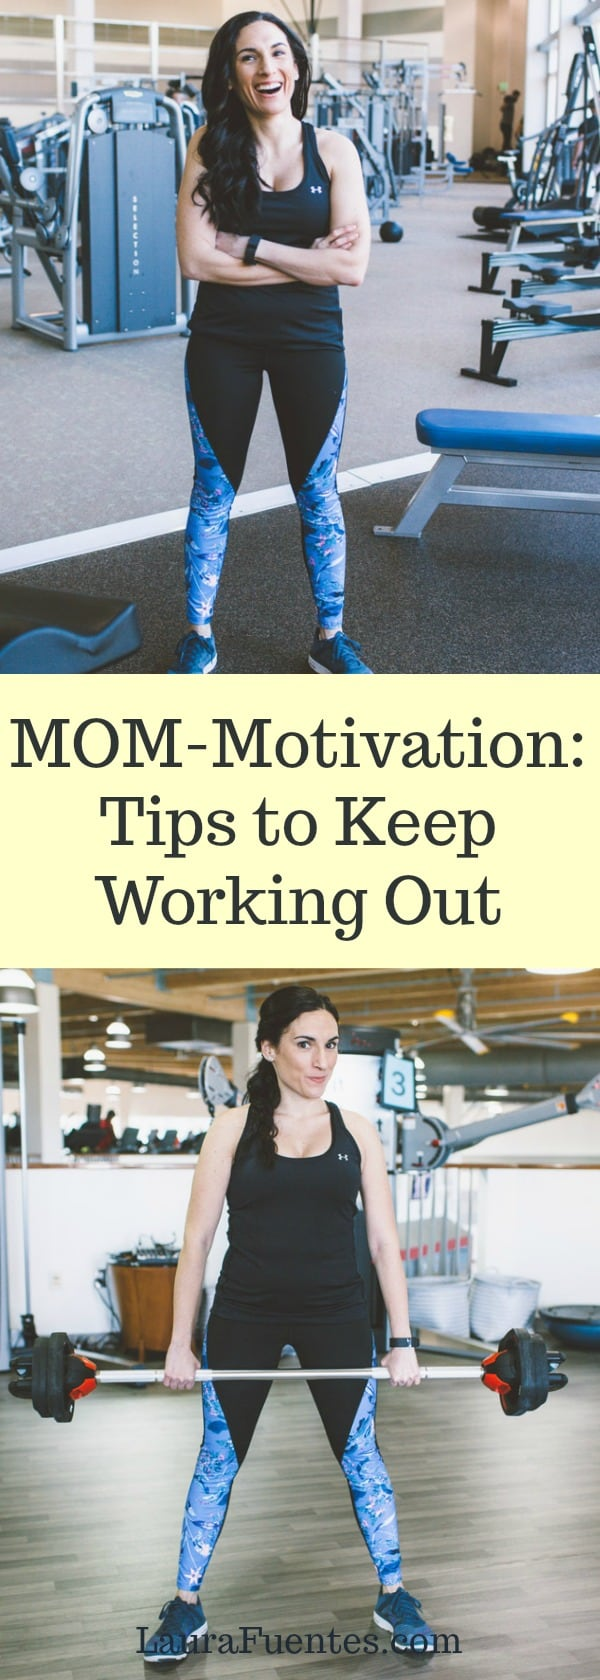 I'm a mom to 3 kids and busy as all h3ll. And these are my tips to staying motivated to work out after January, when everyone at the gym seems to not come as regularly